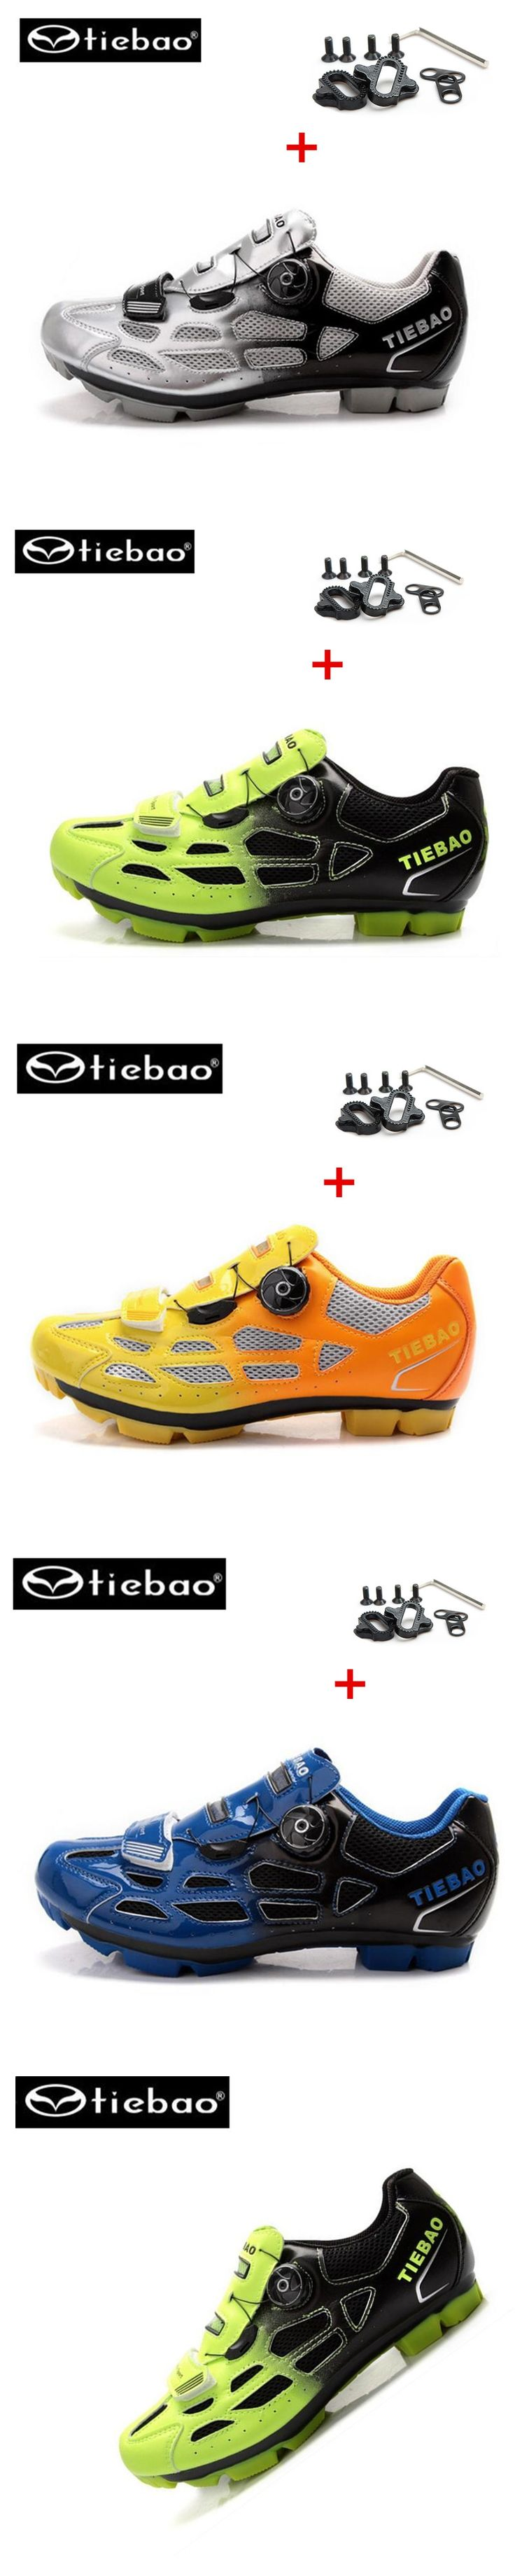 Tiebao zapatillas deportivas hombre bike shoes superstar chaussure velo route equitation bicicleta carretera bike